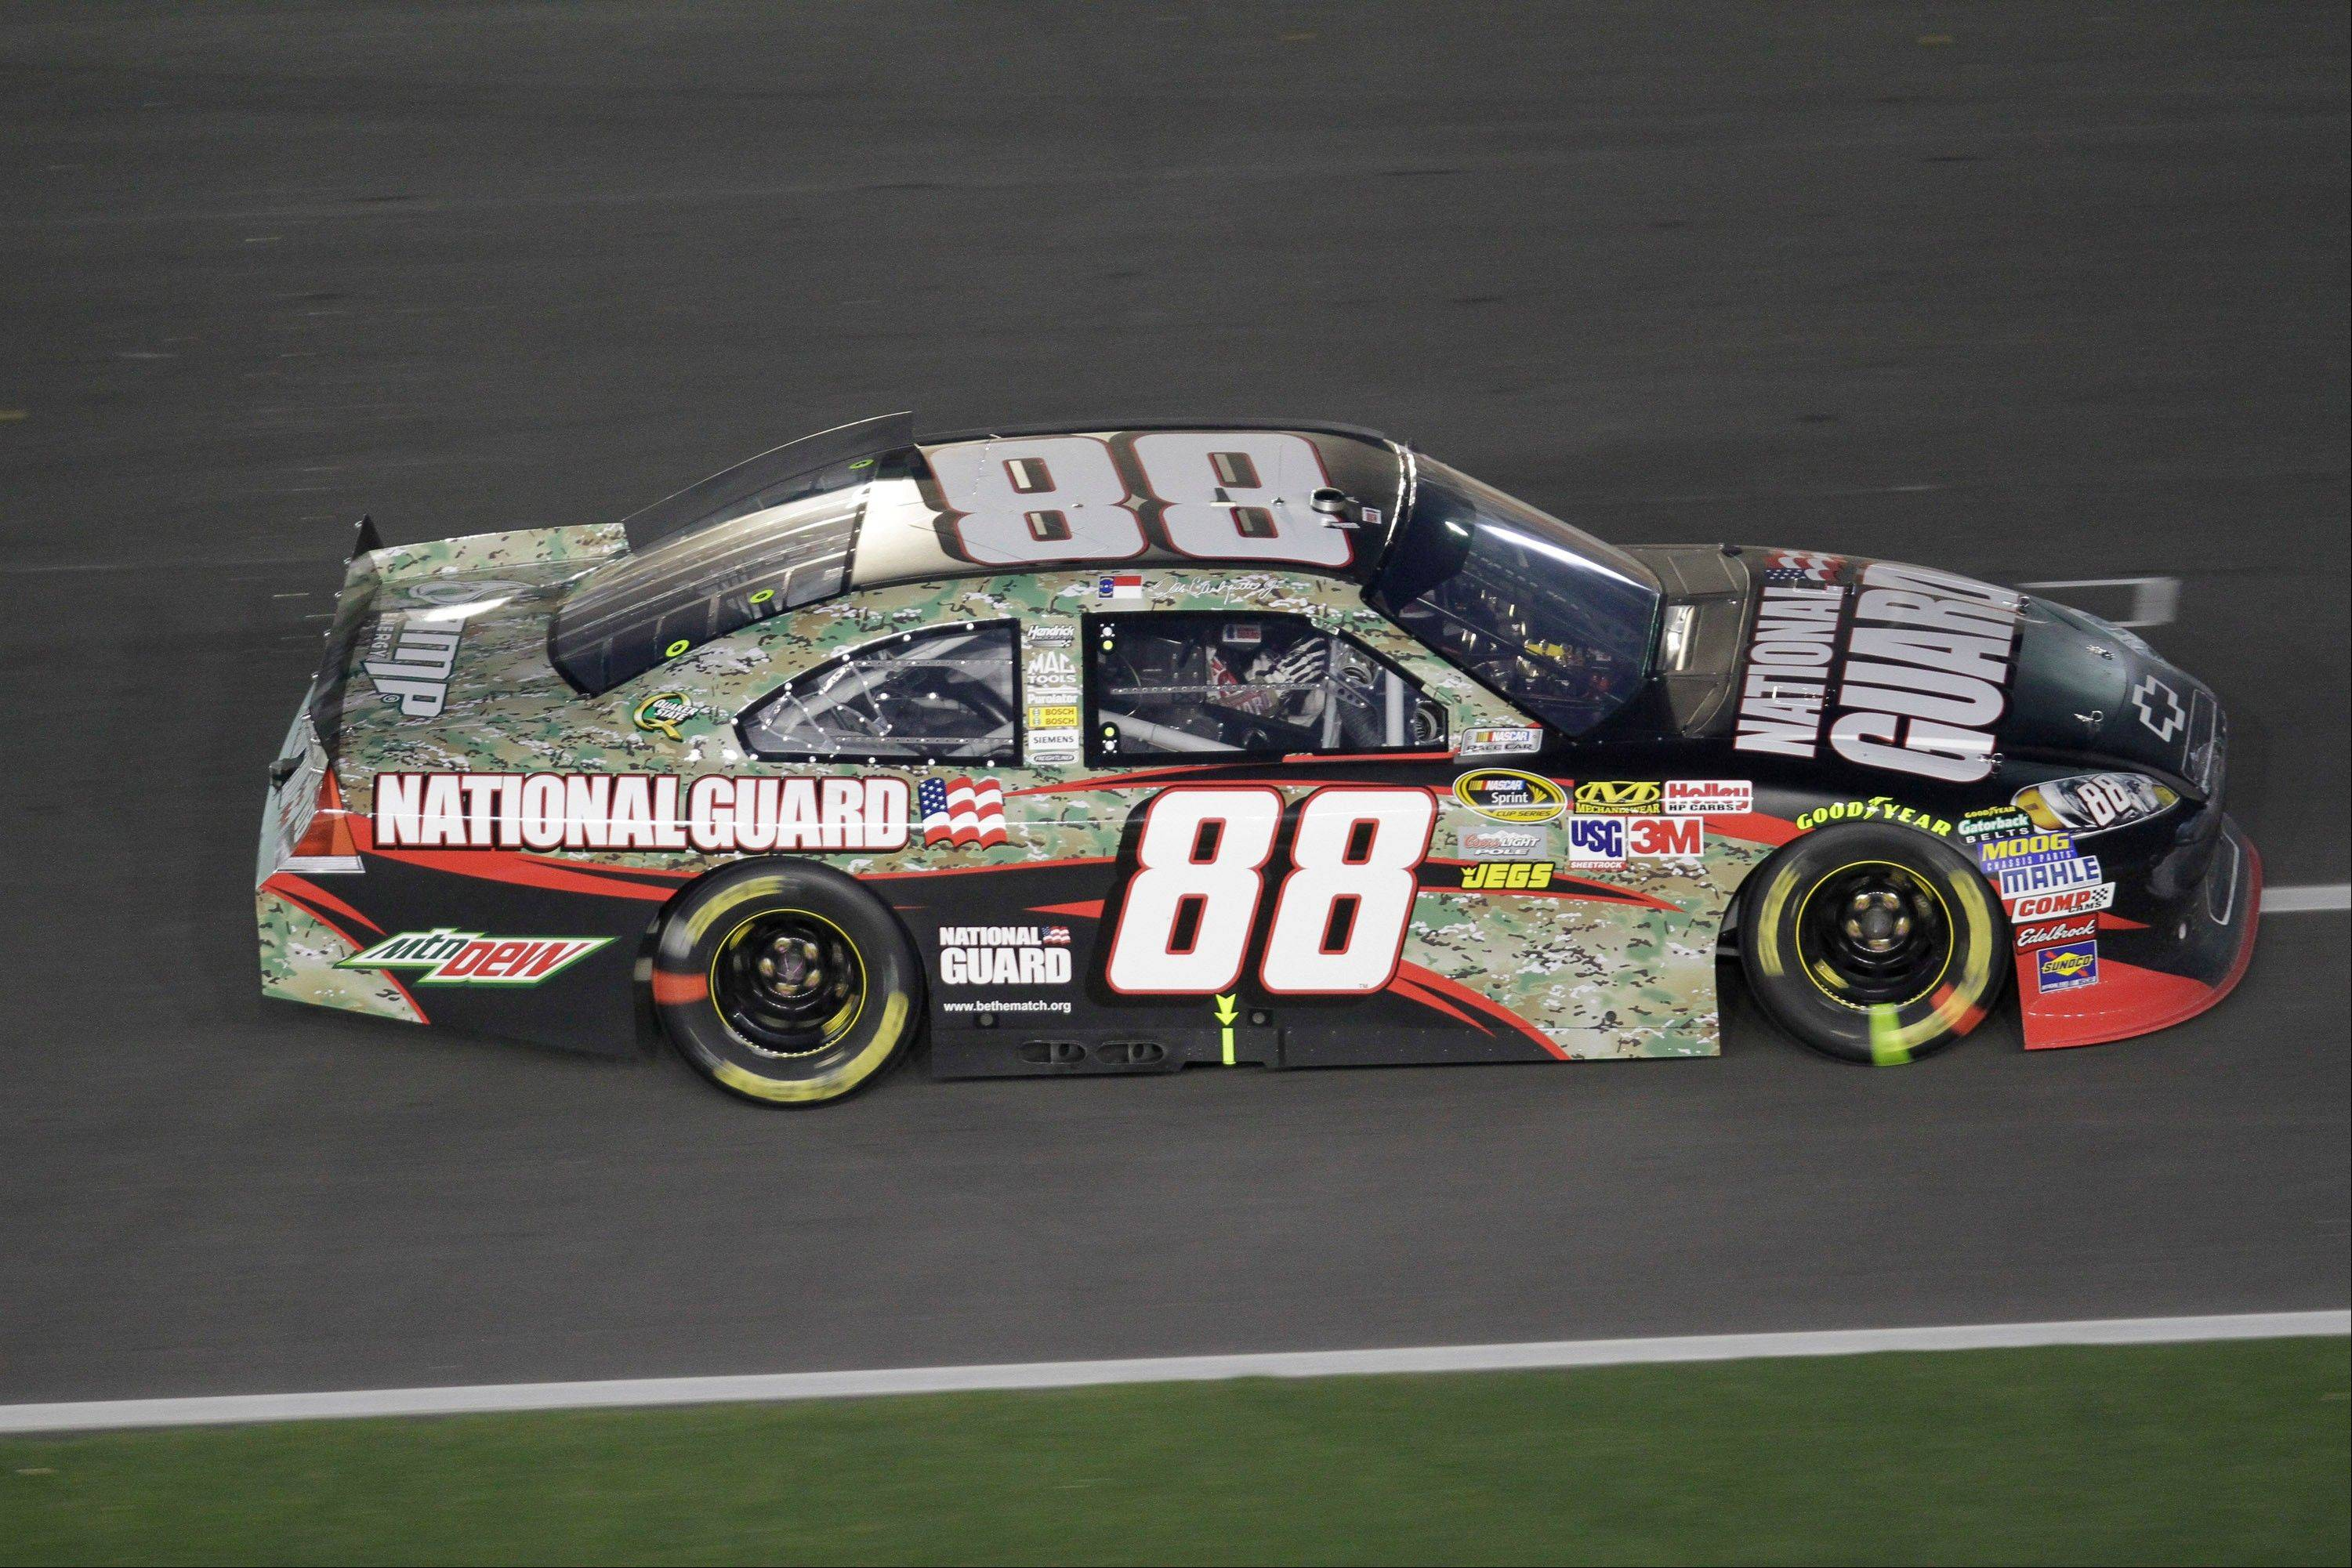 Associated Press Dale Earnhardt Jr. (88) drives his National Guard Chevrolet during the NASCAR Coke Zero 400 auto race Saturday at Daytona International Speedway in Daytona Beach, Fla. Earnhardt has been highly critical of the new style of racing that has taken over recently.